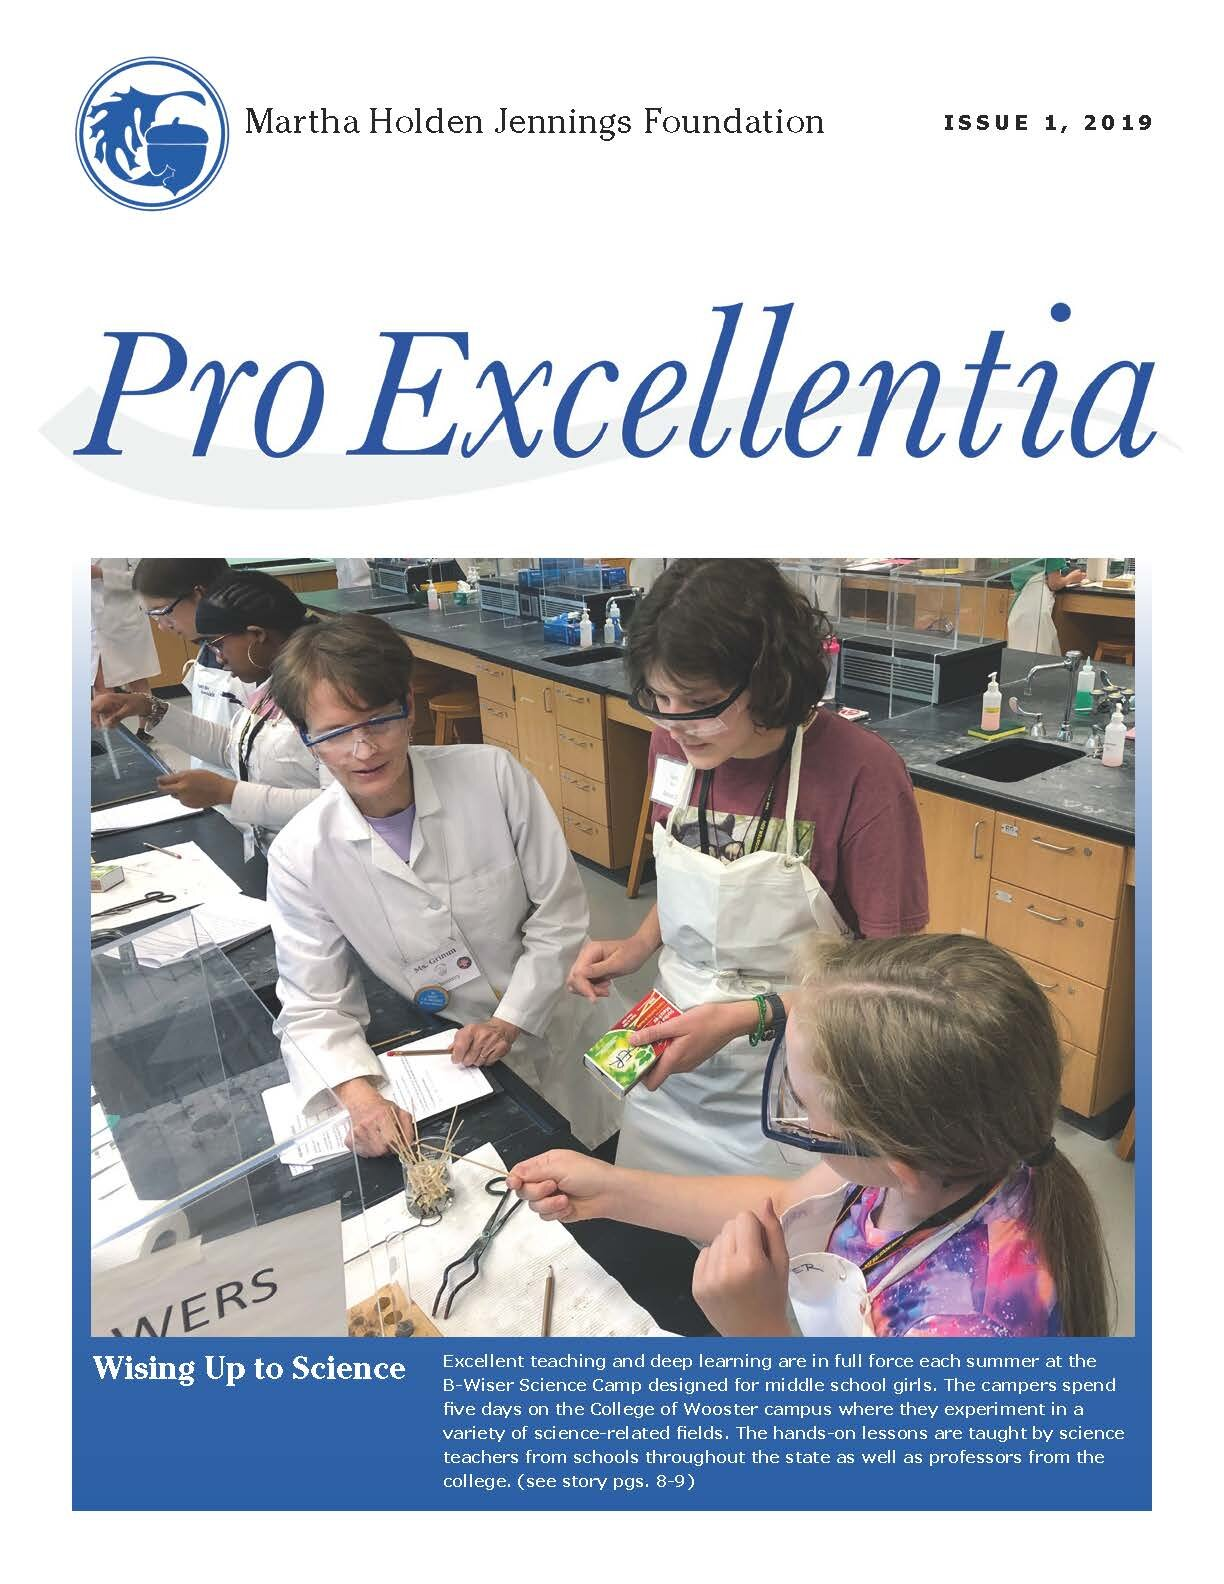 Volume 1 Cover of the ProExcellentia 2019 issue.